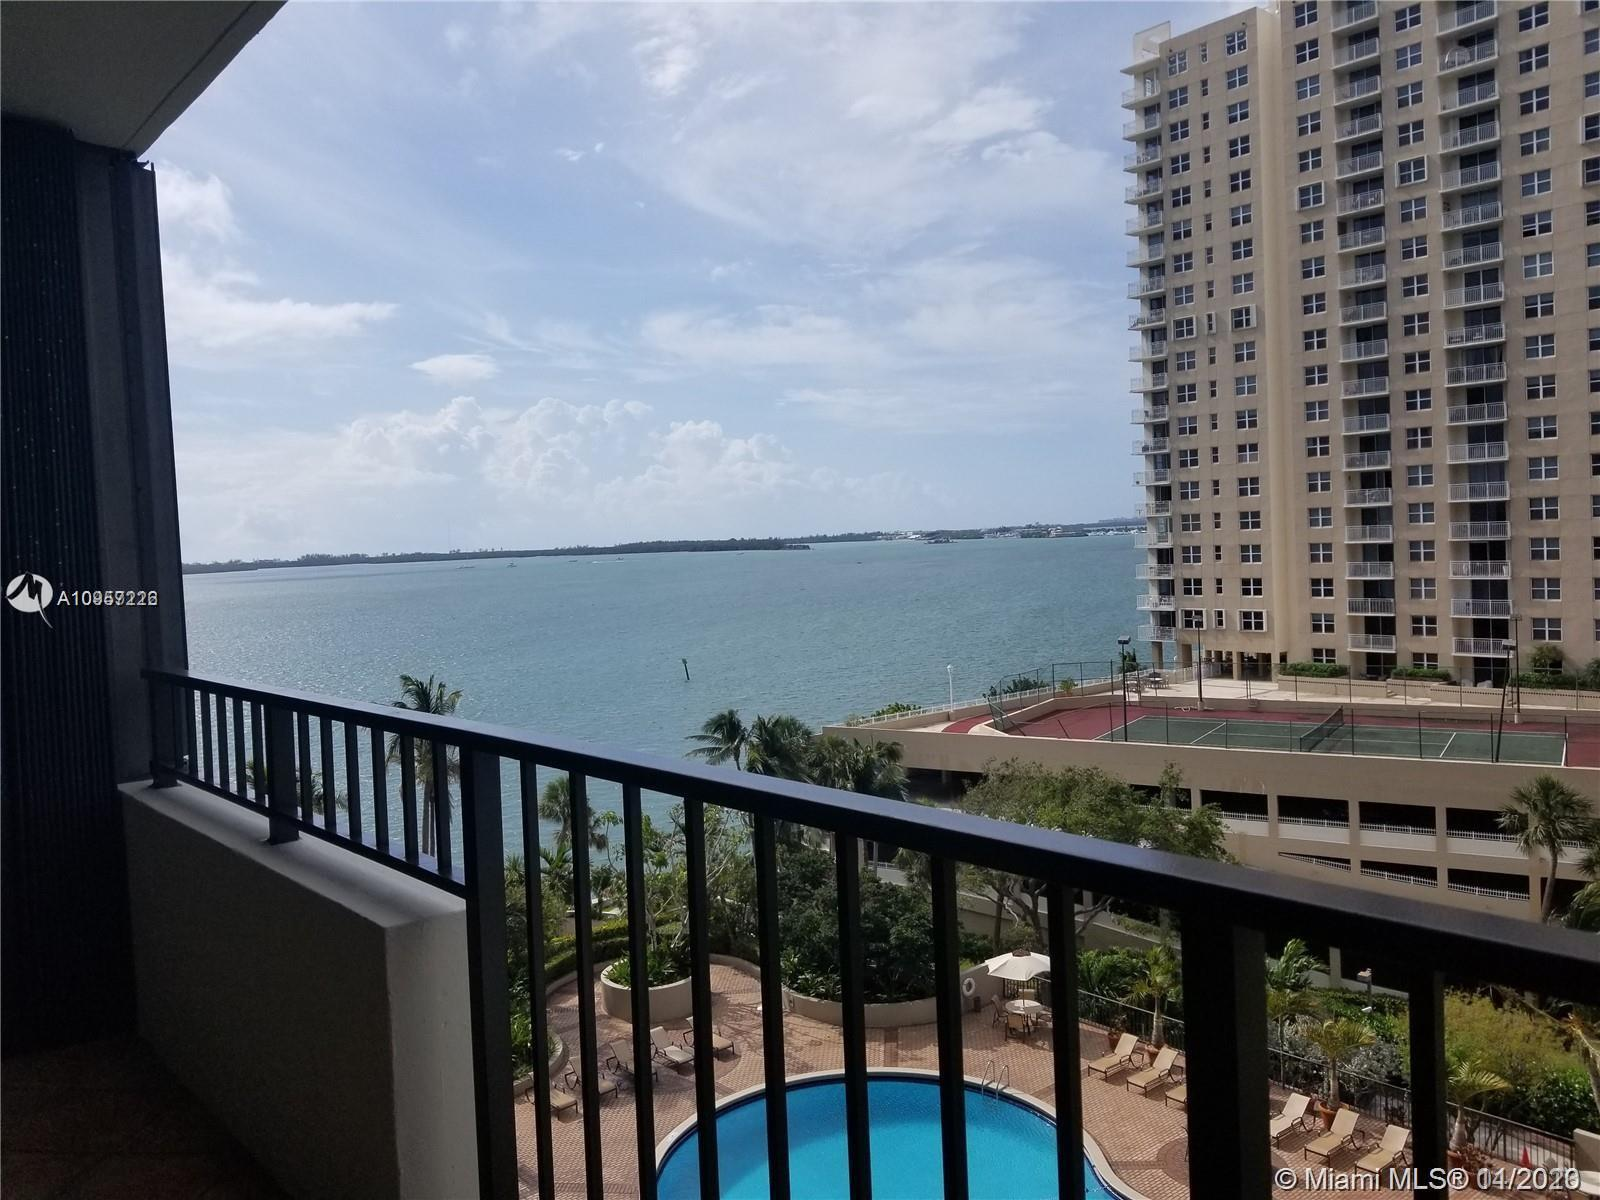 Unobstructed bay views from this spacious 2BD/2BA condo in private Brickell Key. Features open floor